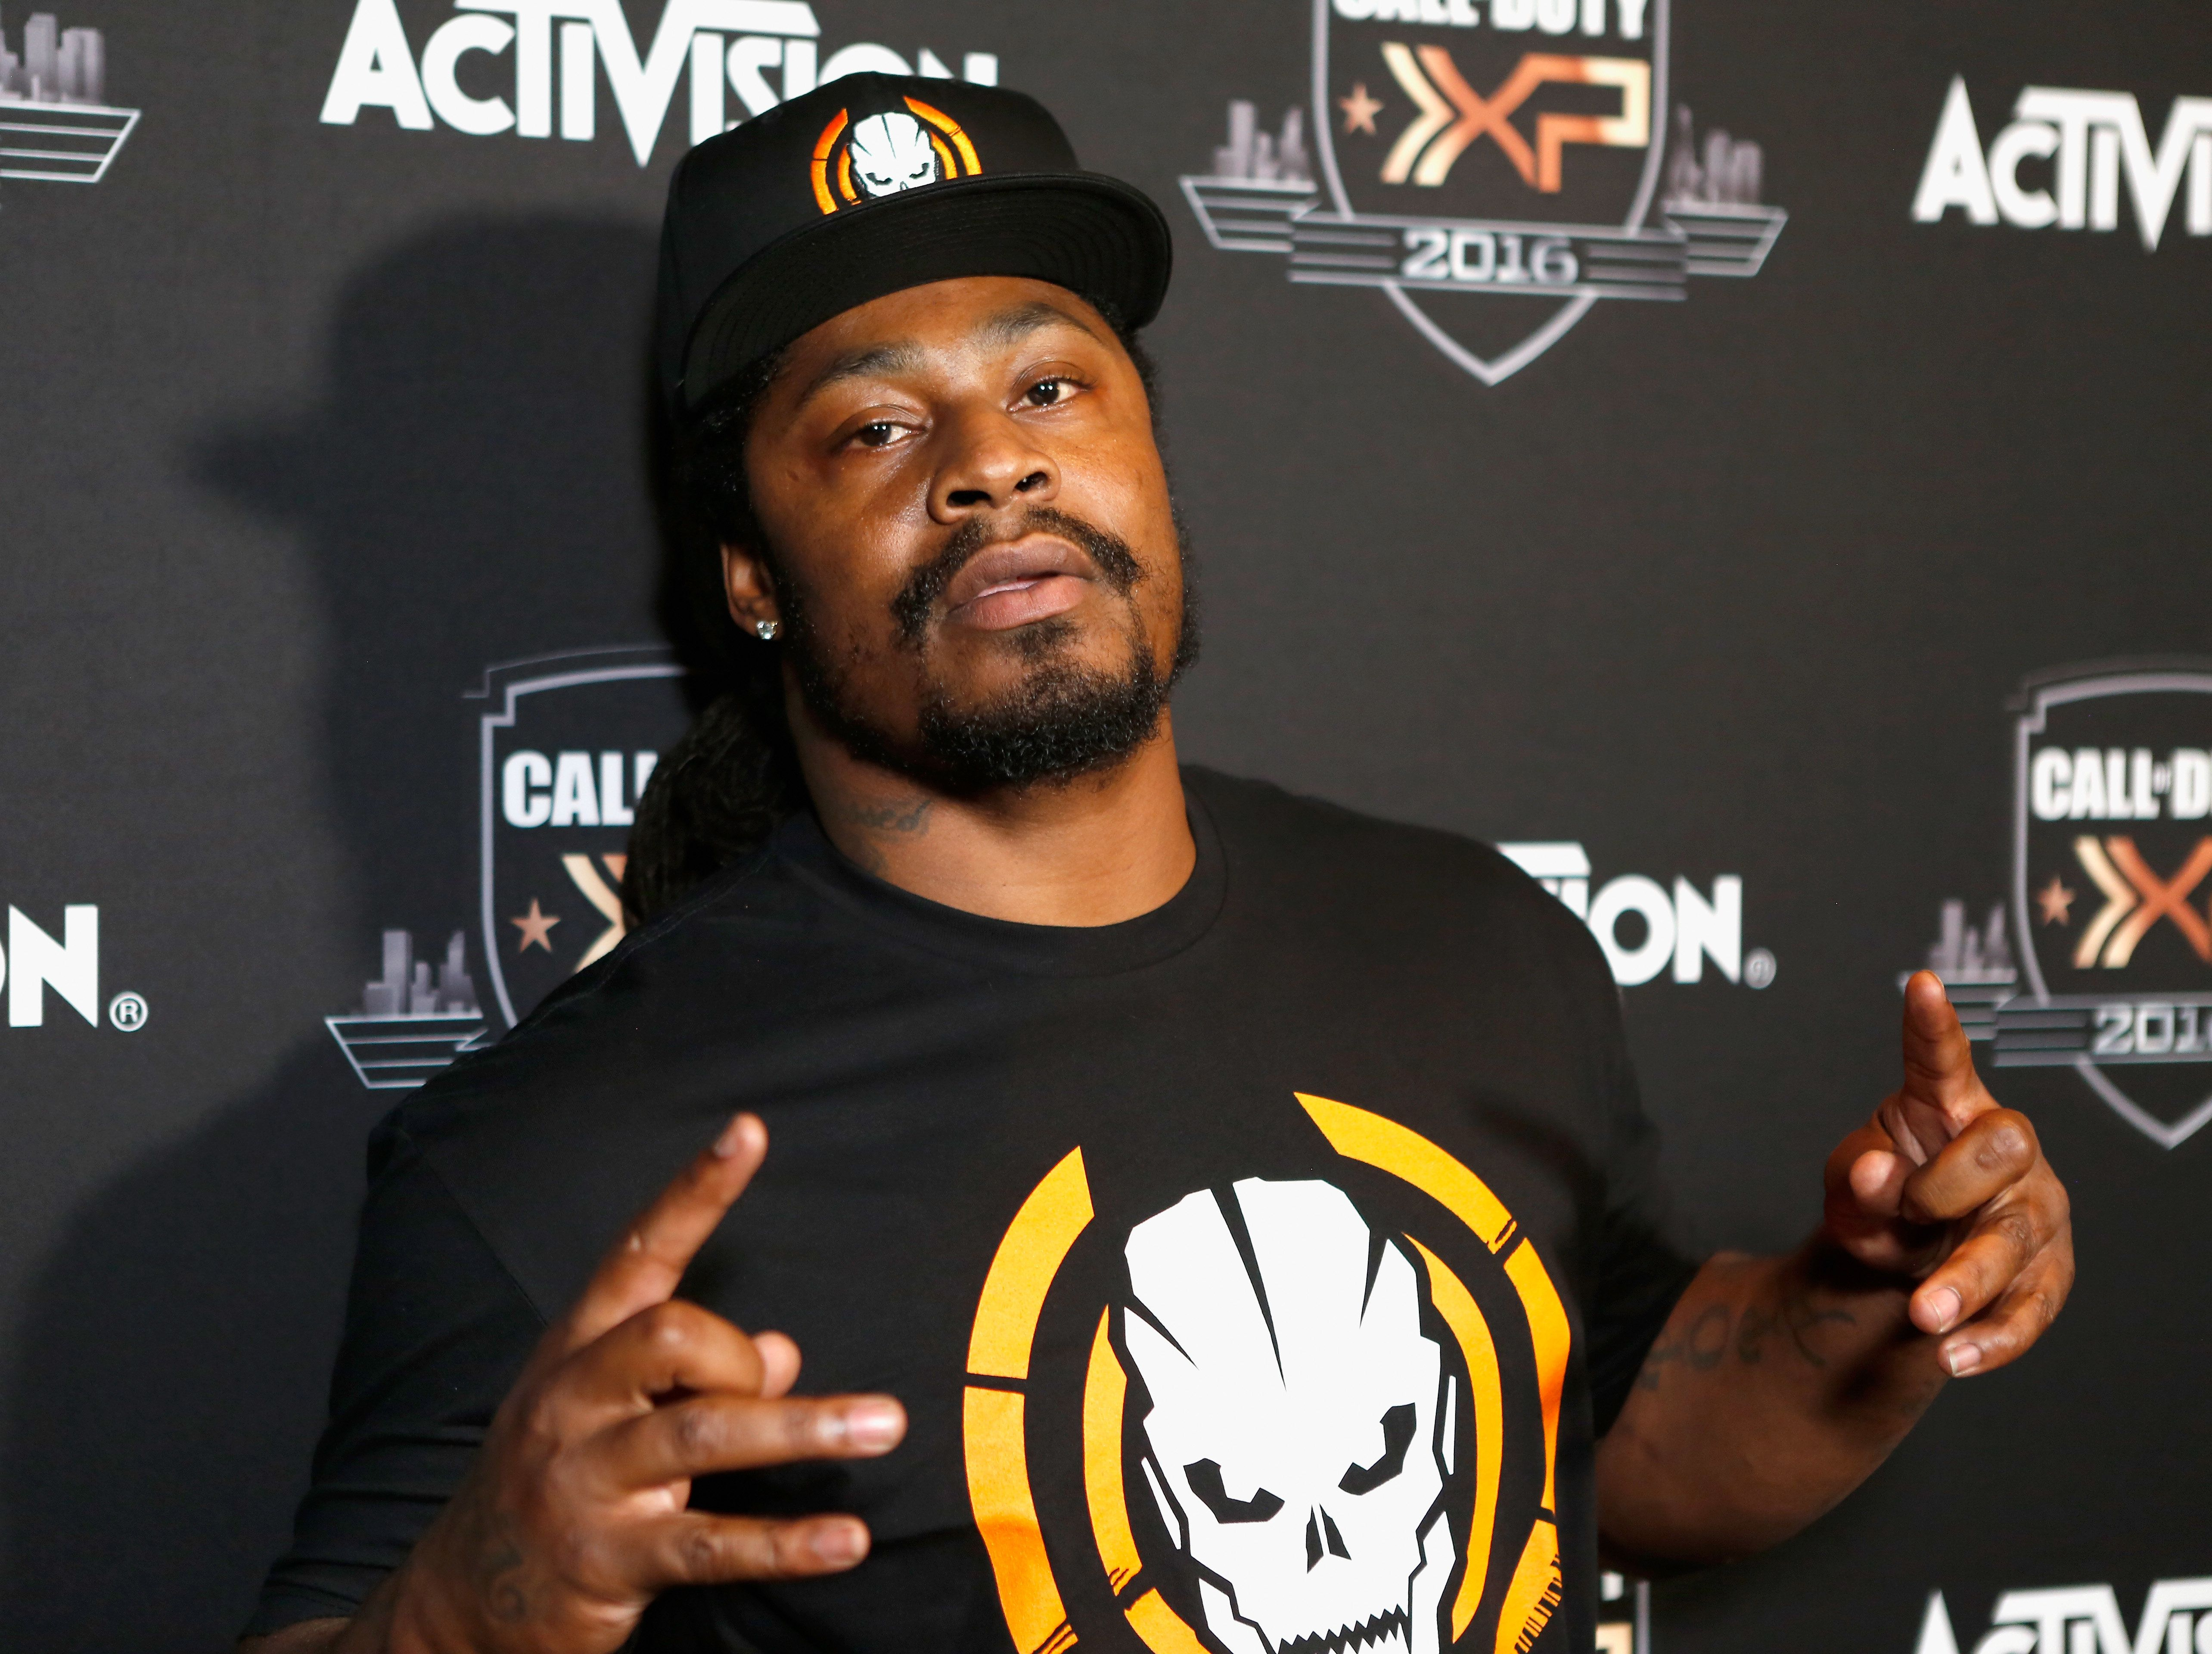 INGLEWOOD, CA - SEPTEMBER 02:  NFL player Marshawn Lynch attends The Ultimate Fan Experience, Call Of Duty XP 2016 presented by Activision at The Forum on September 2, 2016 in Inglewood, California.  (Photo by Randy Shropshire/Getty Images for Activision)